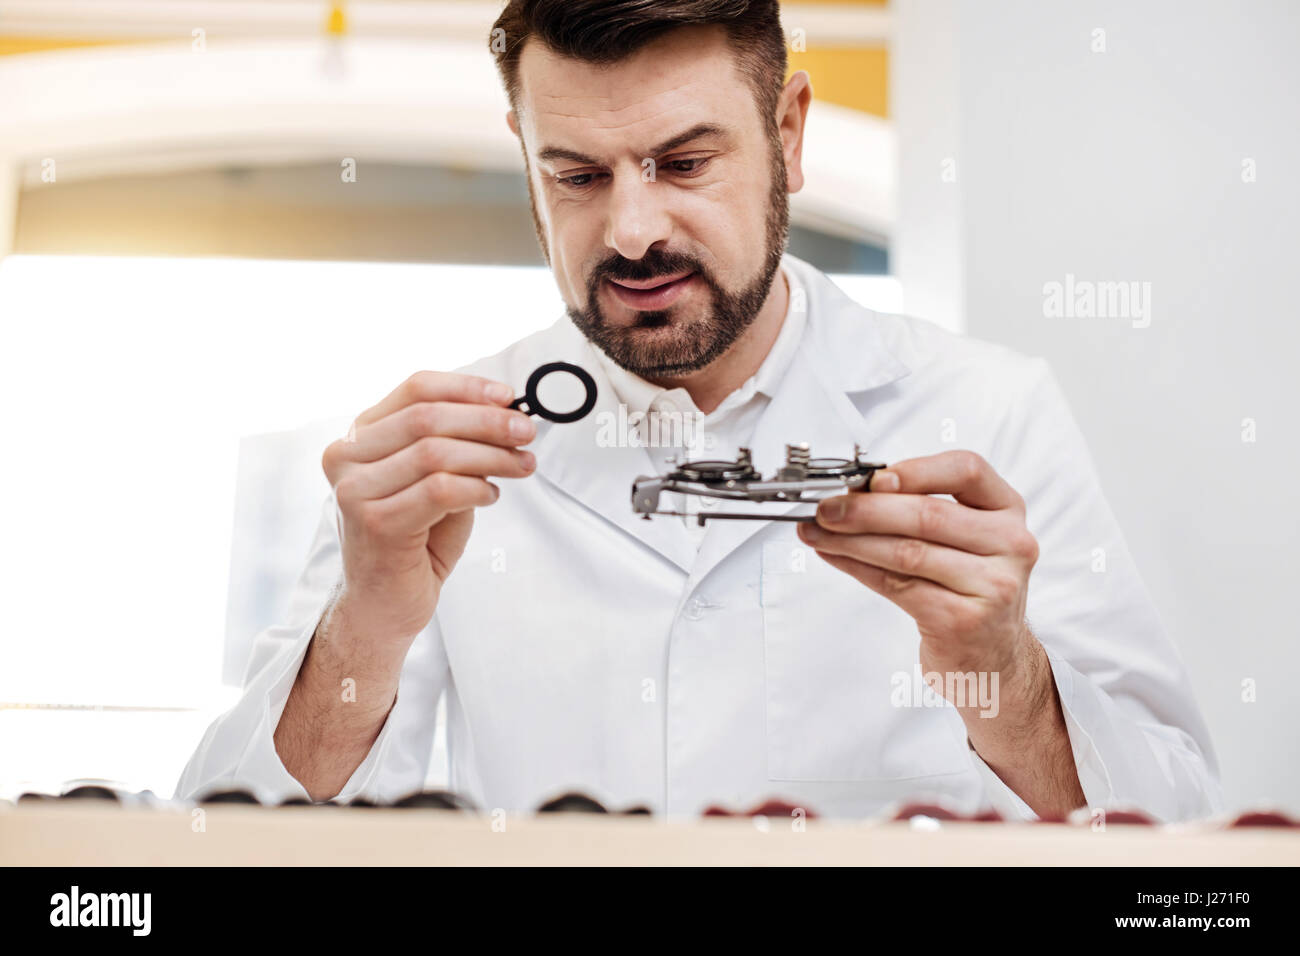 Dedicated professional working with tools carefully - Stock Image